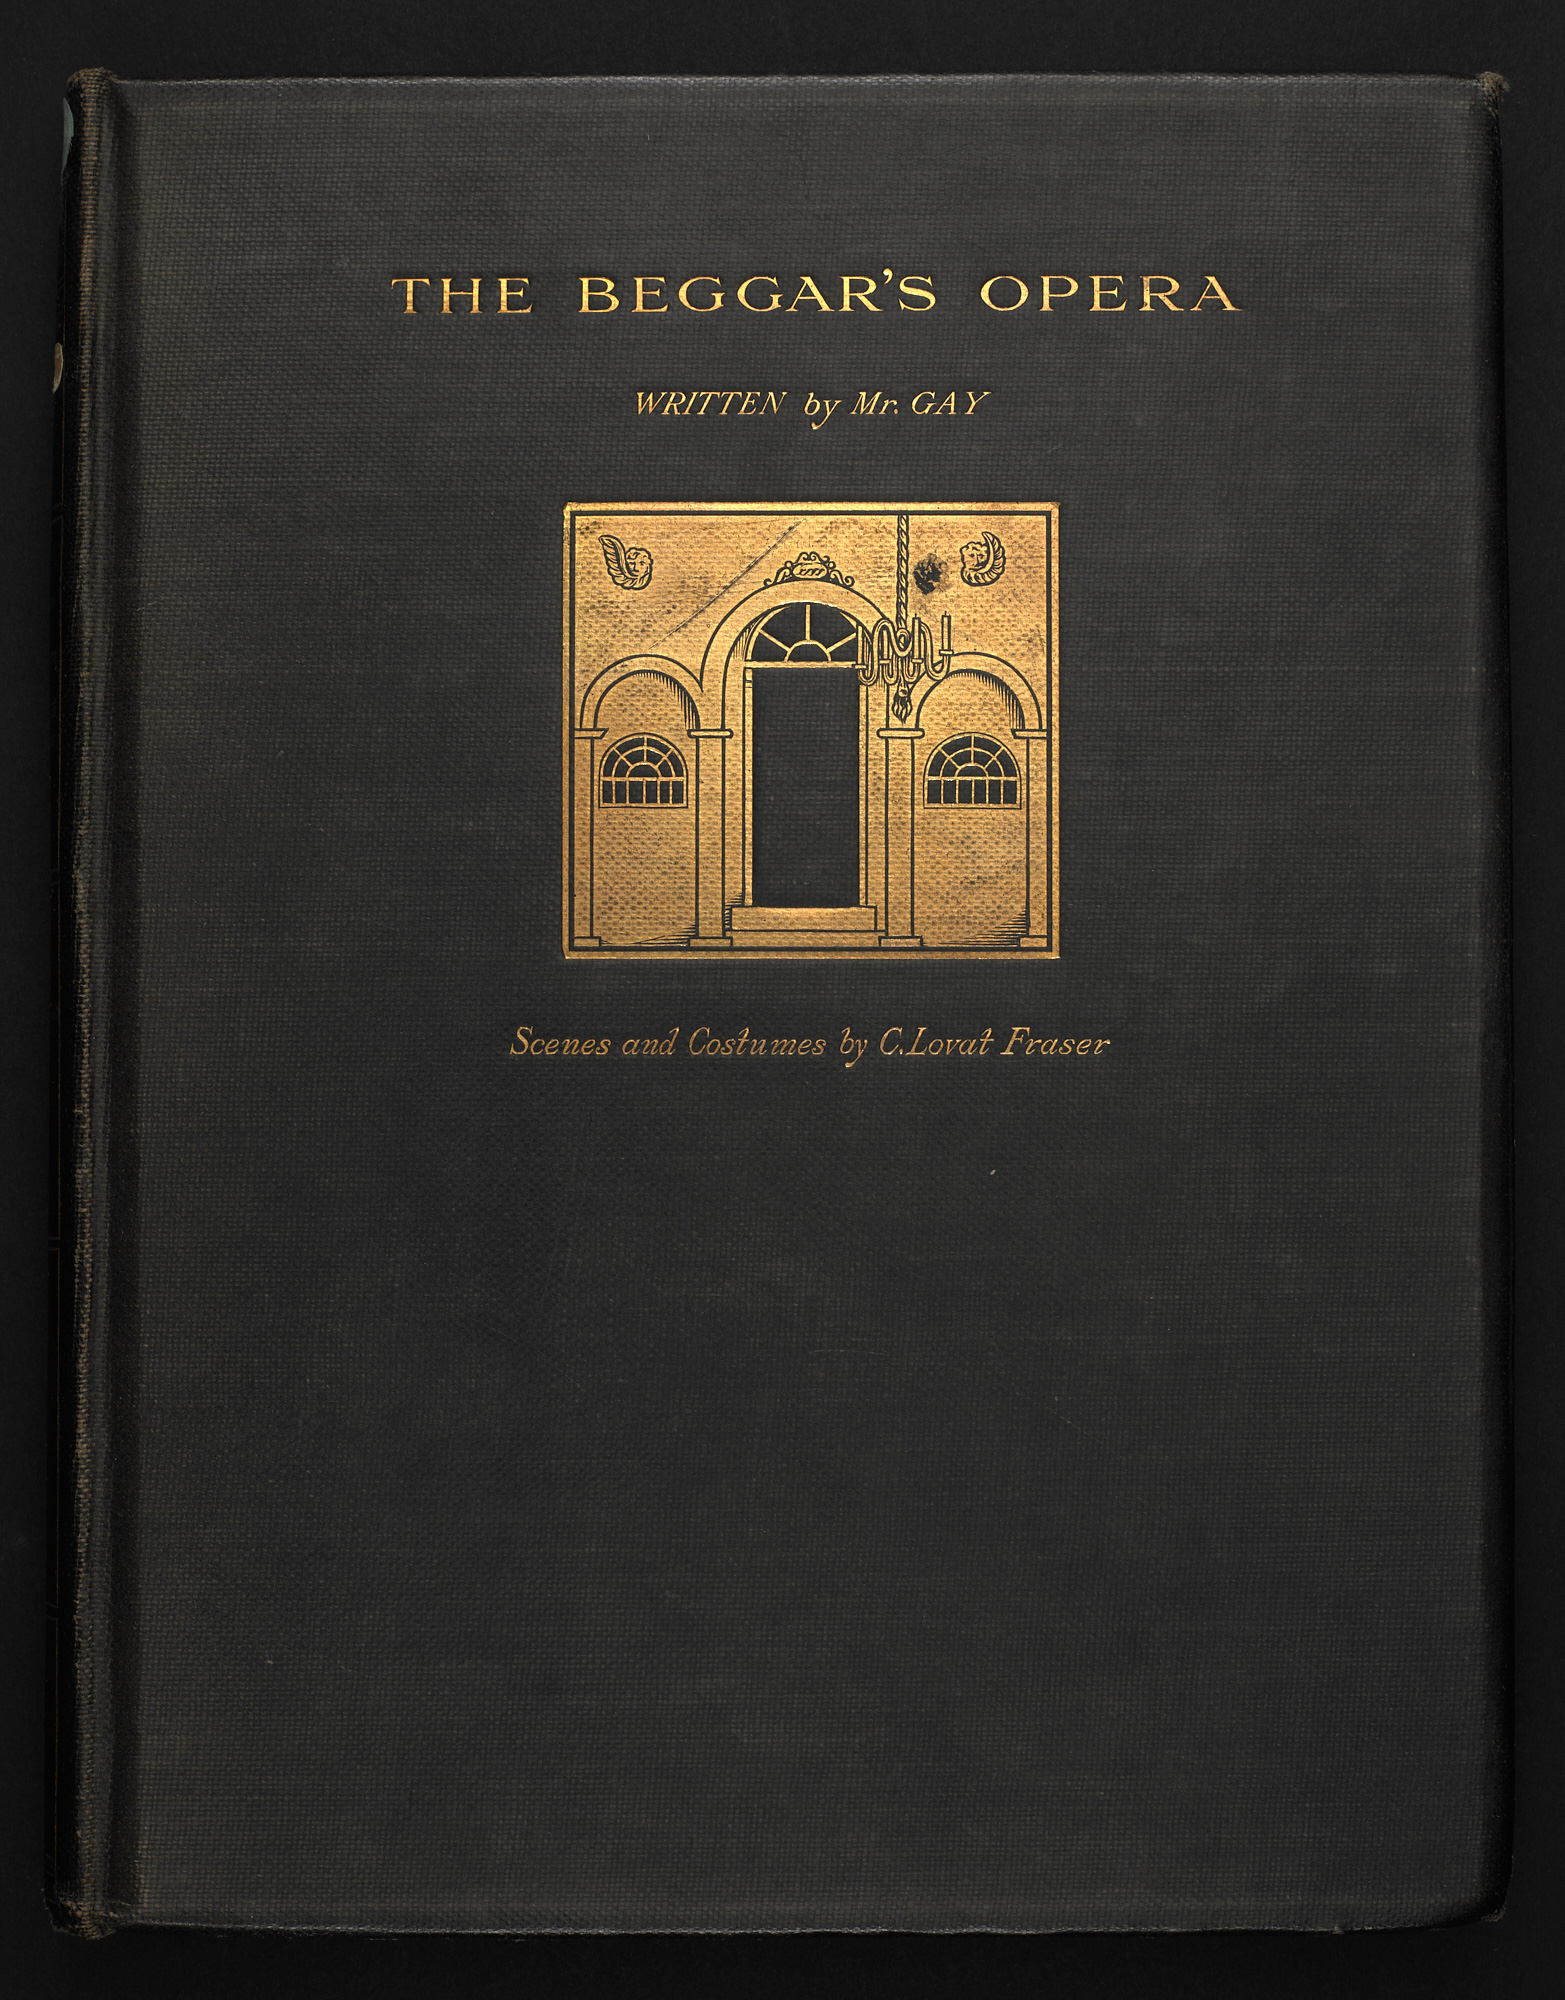 1921 edition of The Beggar's Opera, illustrated by Claud Lovat Fraser